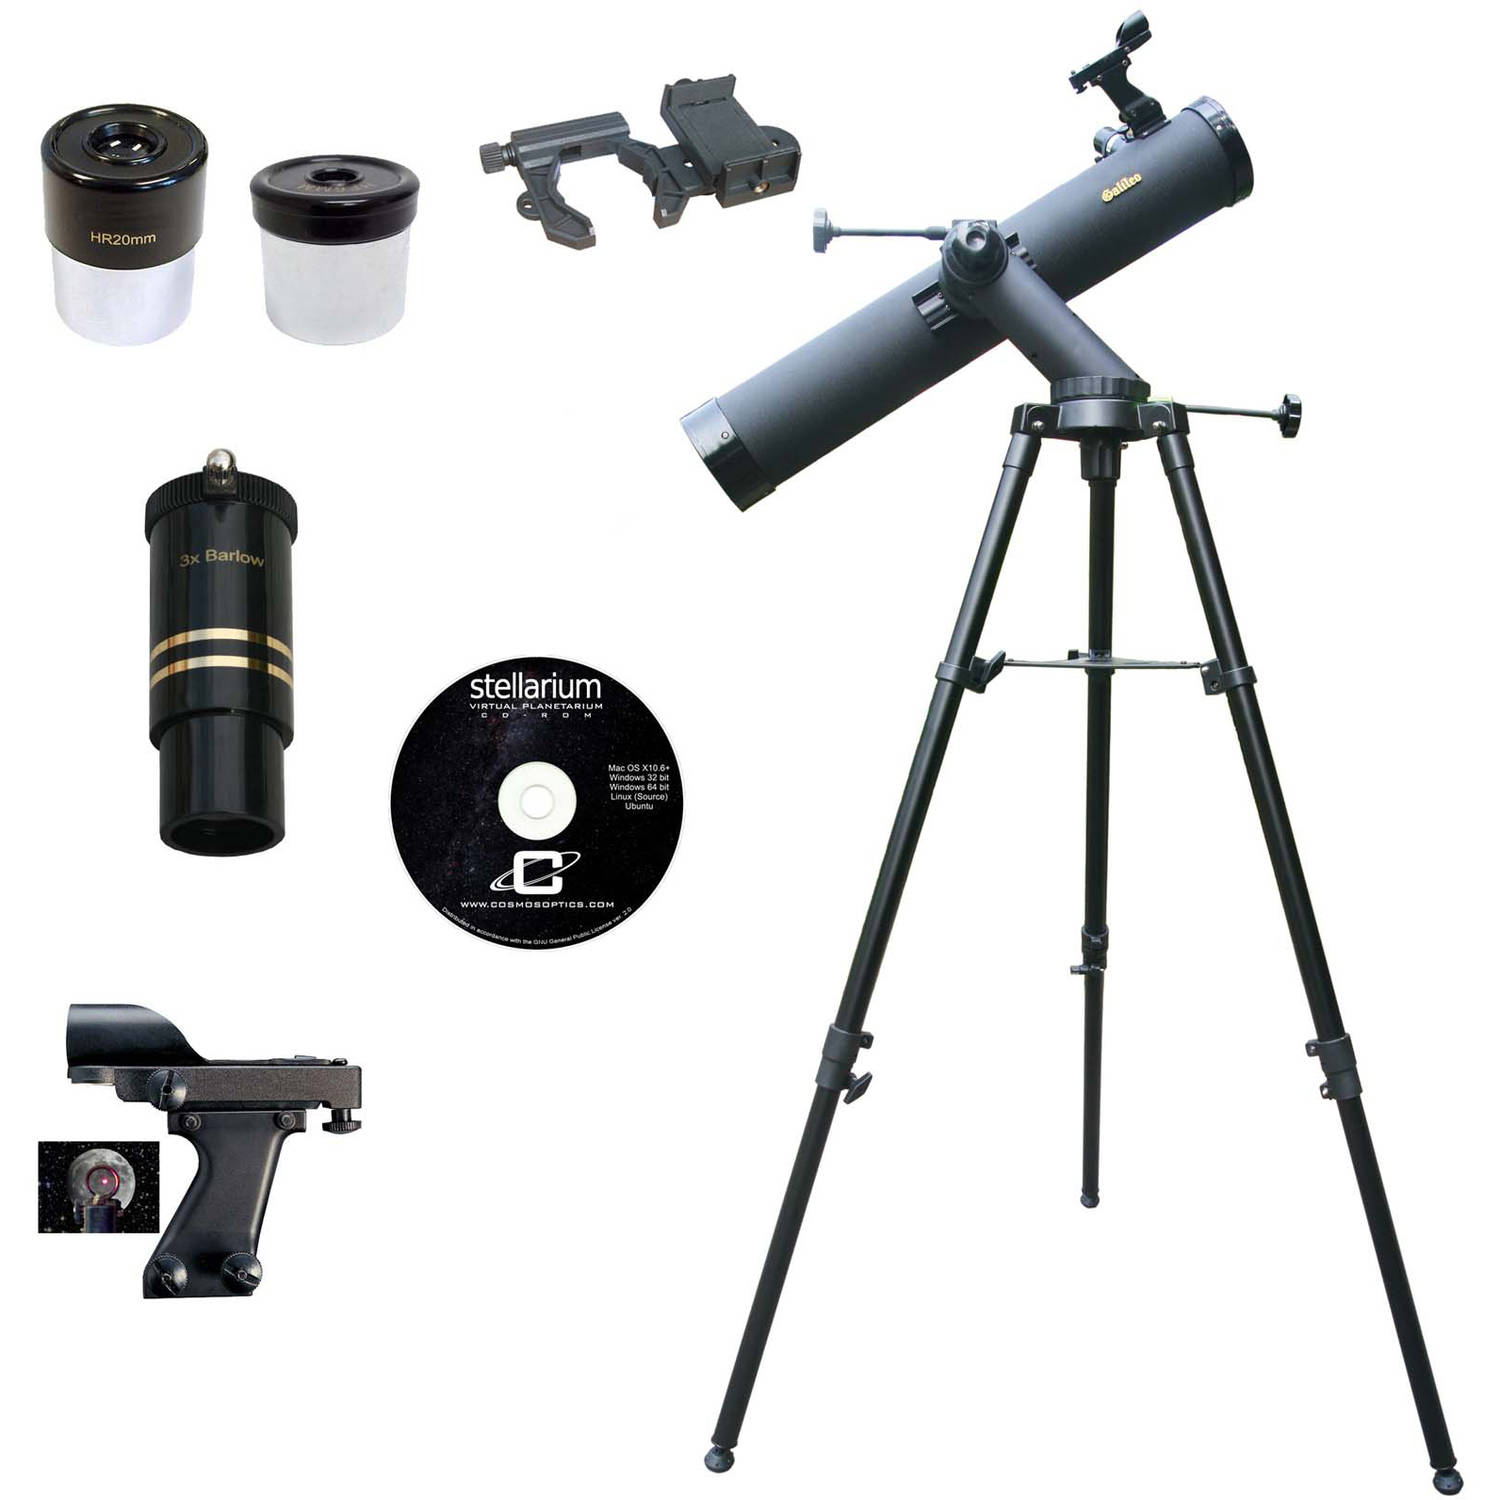 Galileo SS-80090TR 800mm x 90mm Astronomical Reflector Telescope with Smartphone Photo